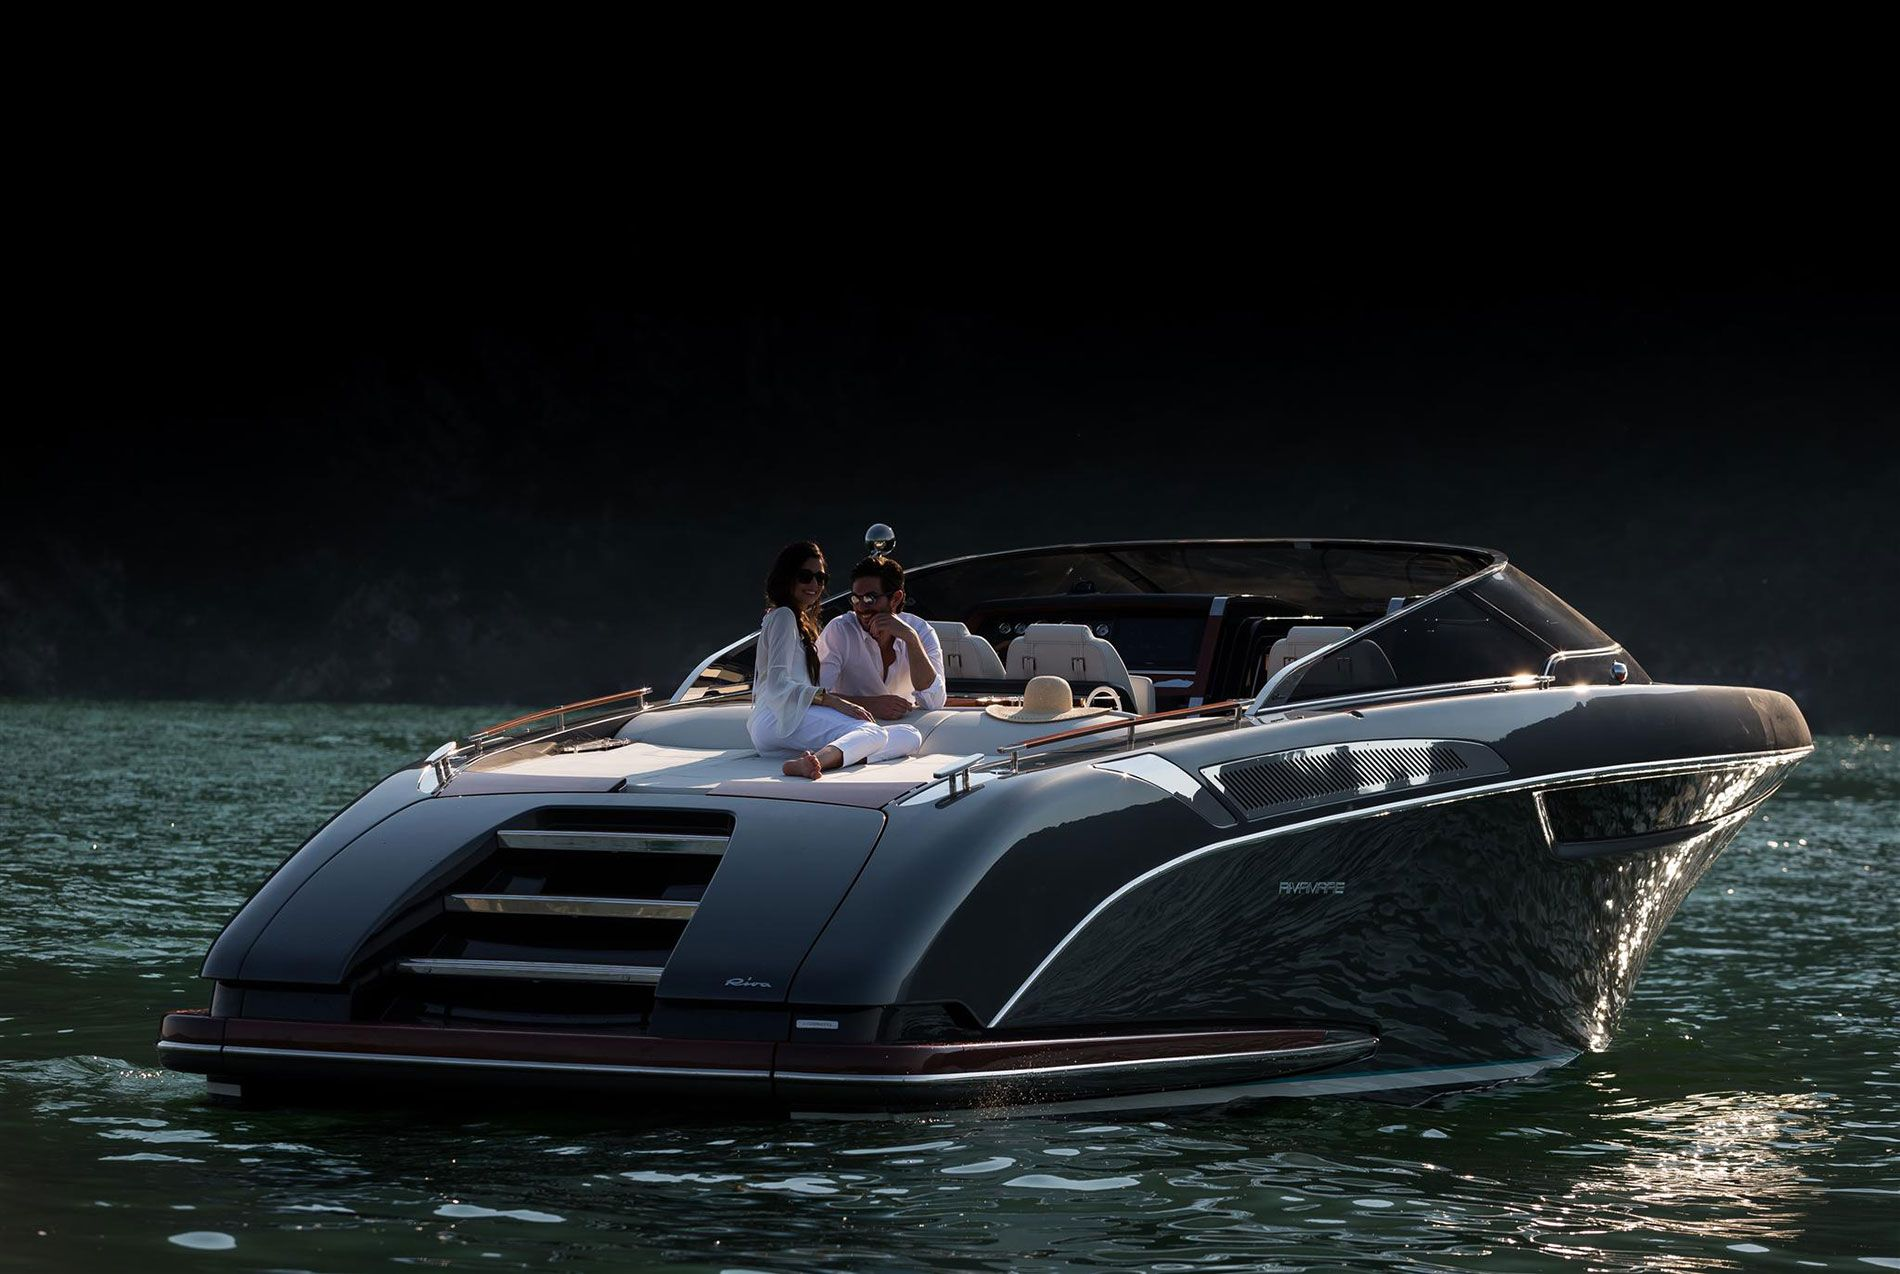 Riva Rivamare   Exterior   Aft area   Speed boats, Boats luxury, Boat